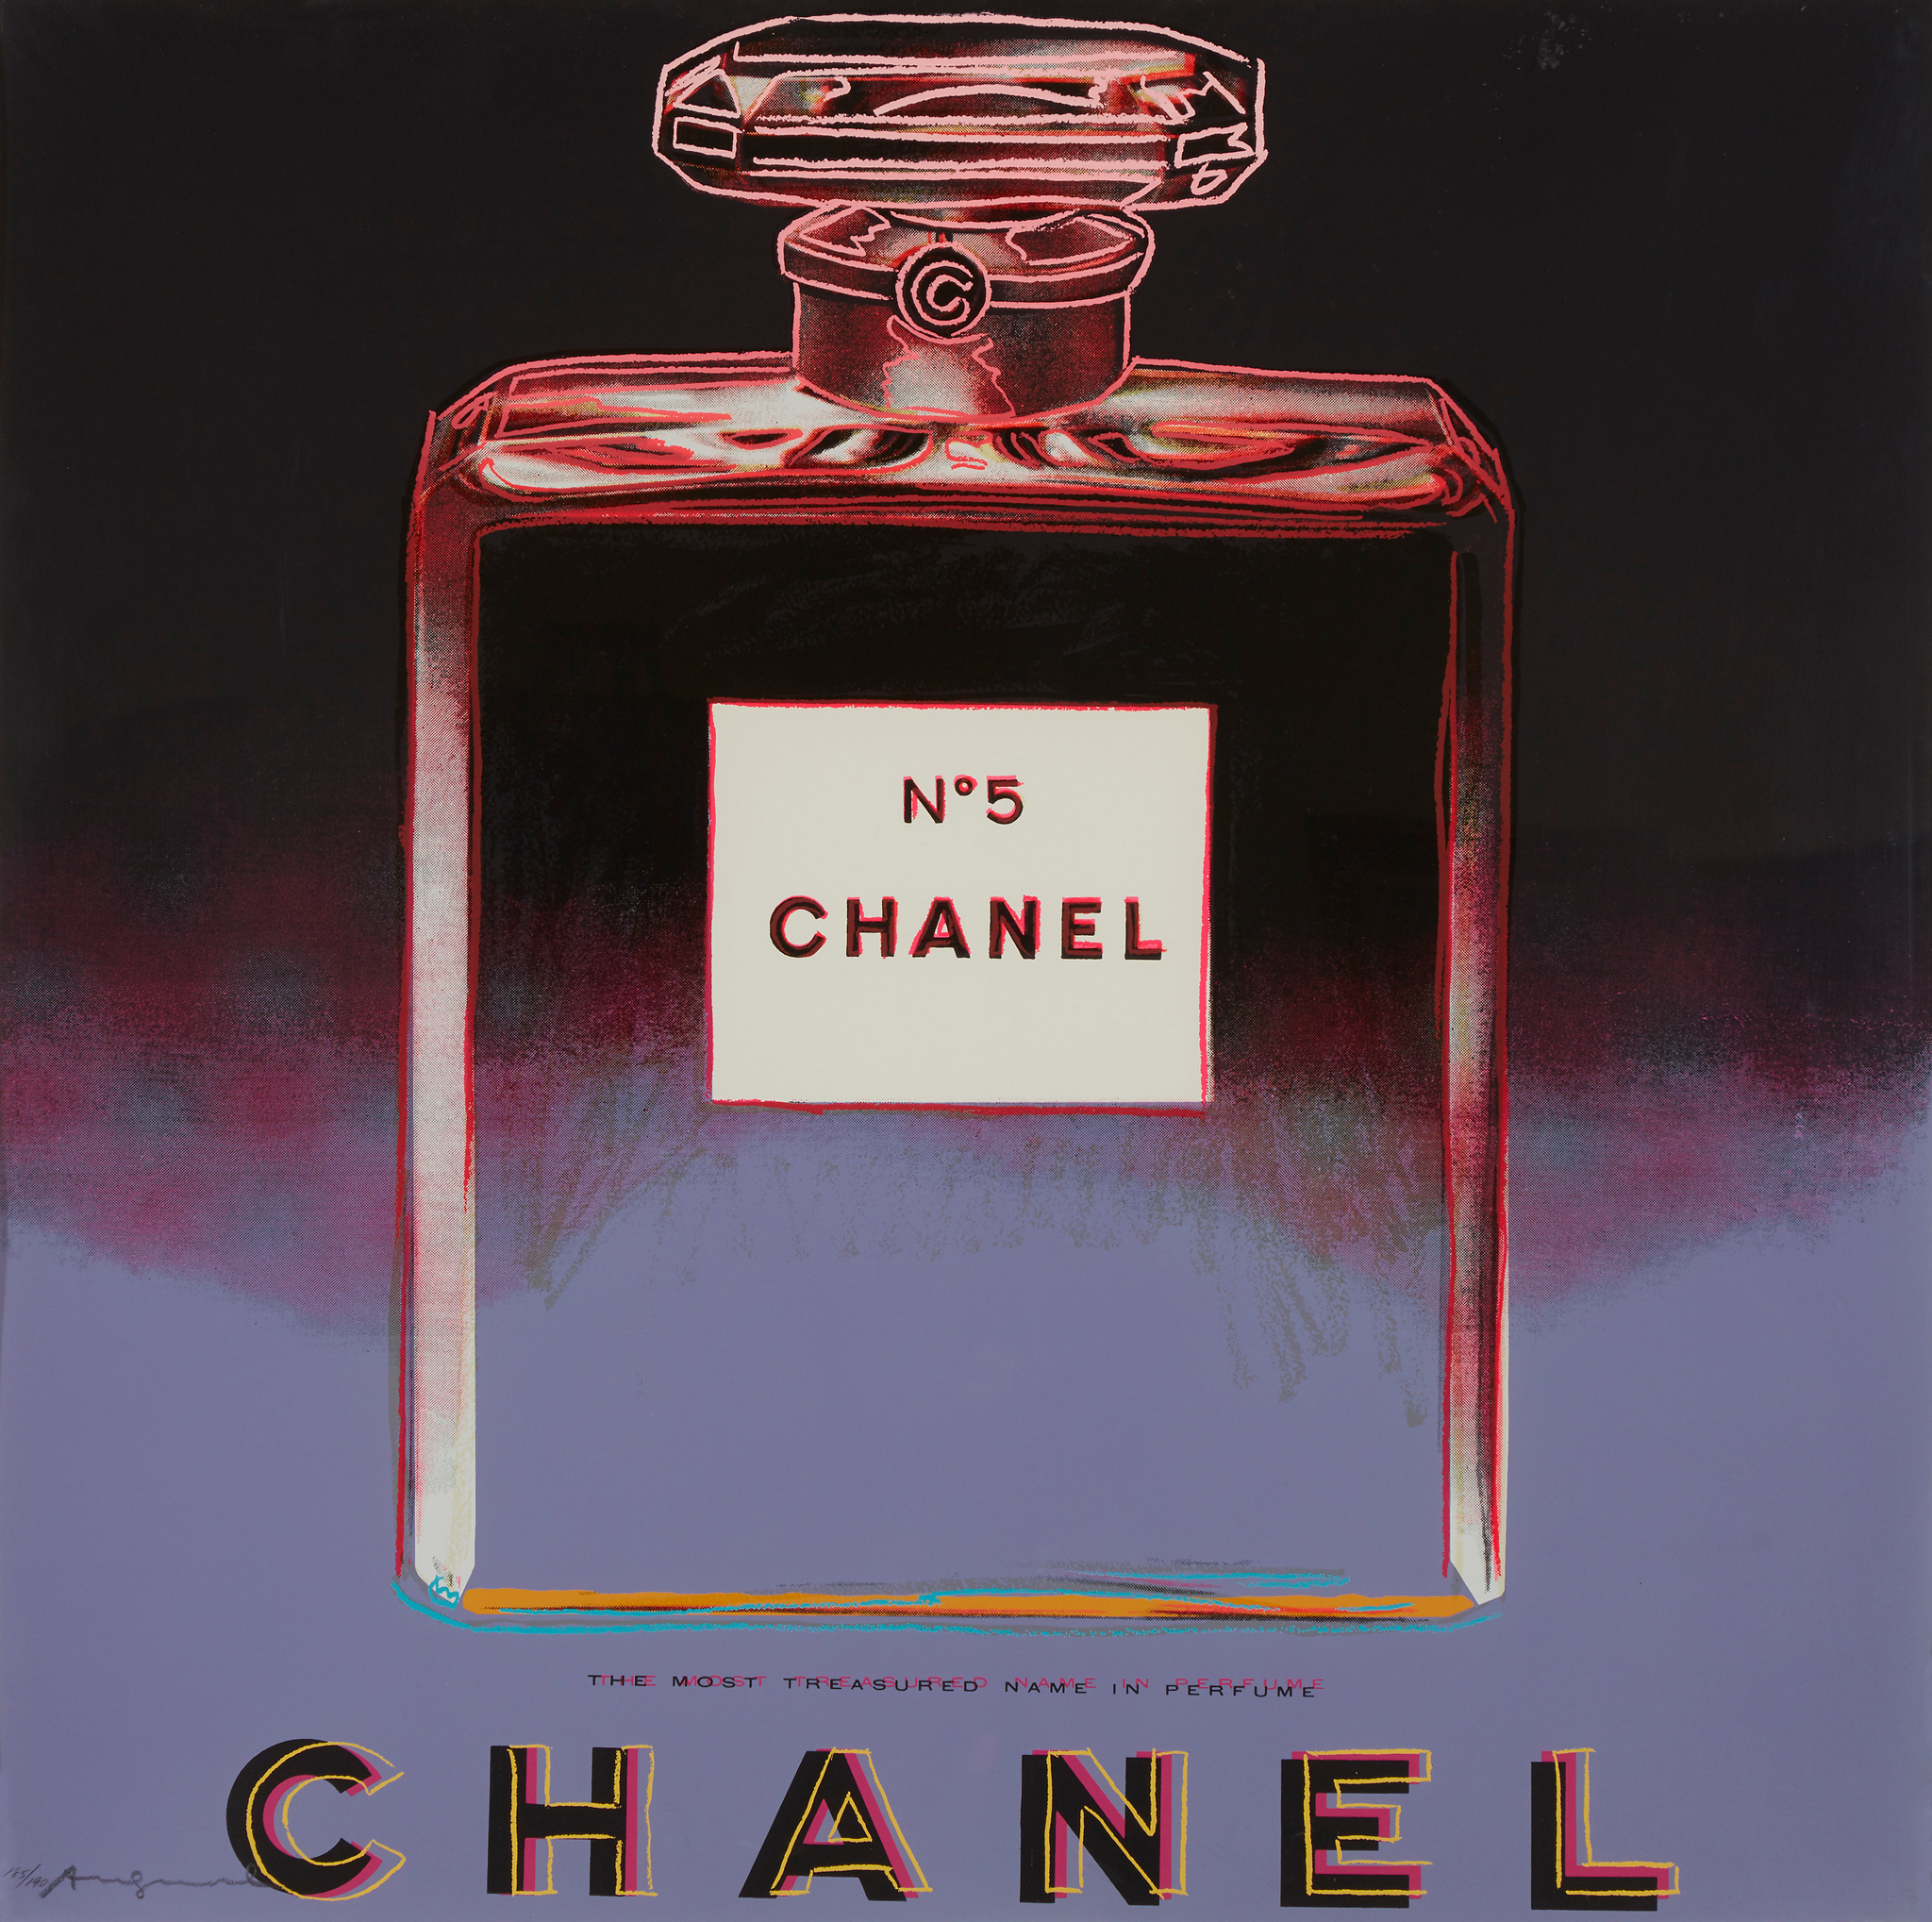 Andy Warhol, Chanel from Ads, 1985, Color screenprint, $120,000-$180,000 © 2020 The Andy Warhol Foundation for the Visual Arts, Inc.  / Licensed by Artists Rights Society (ARS), New York Courtesy Ronald Feldman Gallery, New York